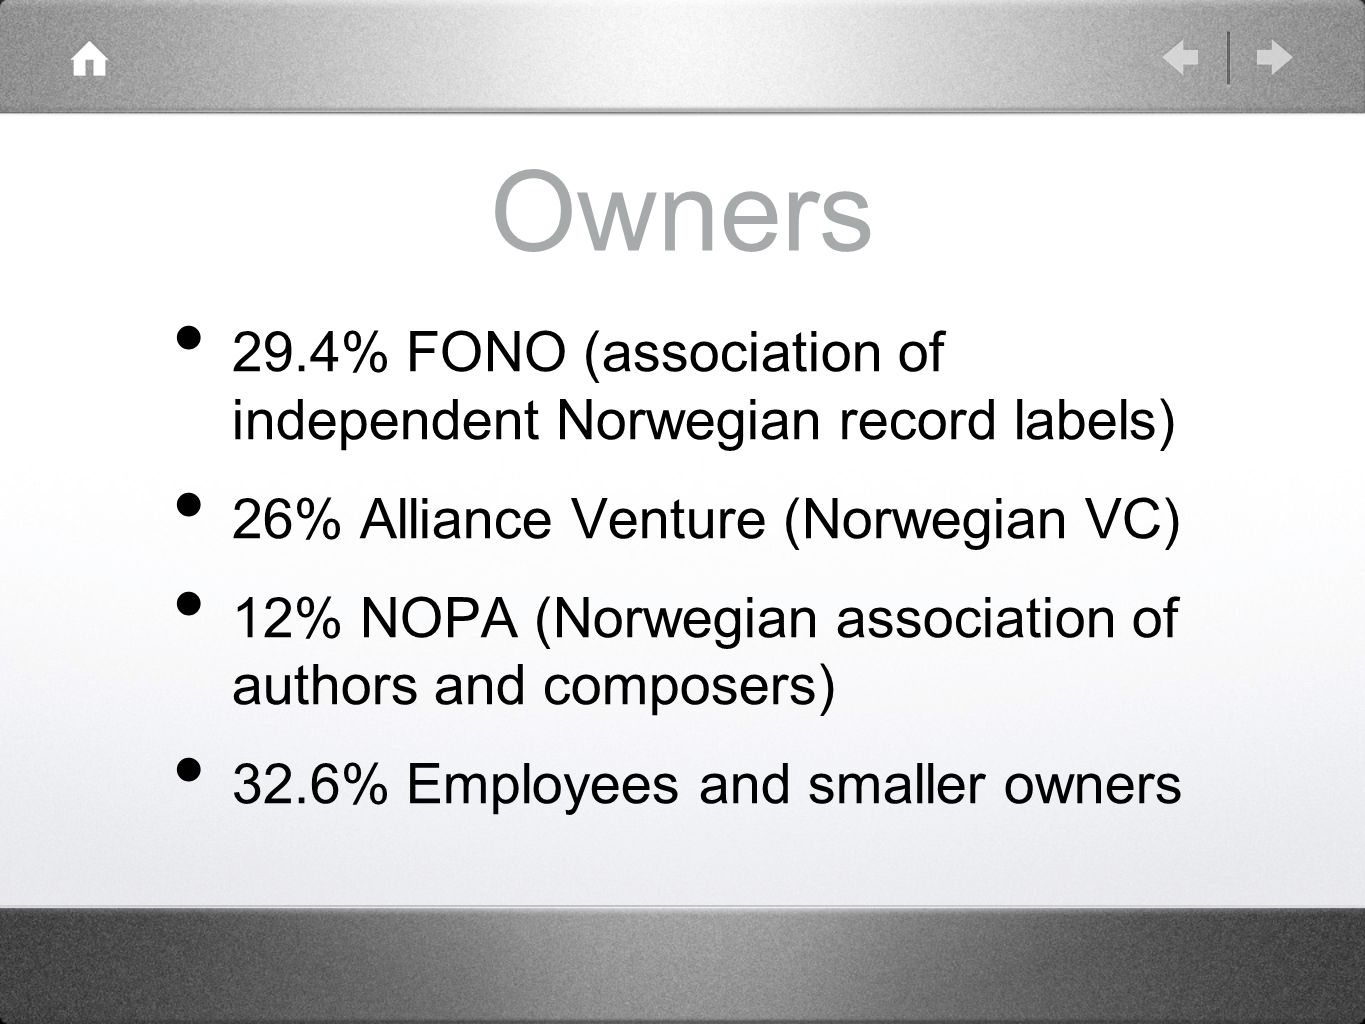 Owners 29.4% FONO (association of independent Norwegian record labels) 26% Alliance Venture (Norwegian VC) 12% NOPA (Norwegian association of authors and composers) 32.6% Employees and smaller owners